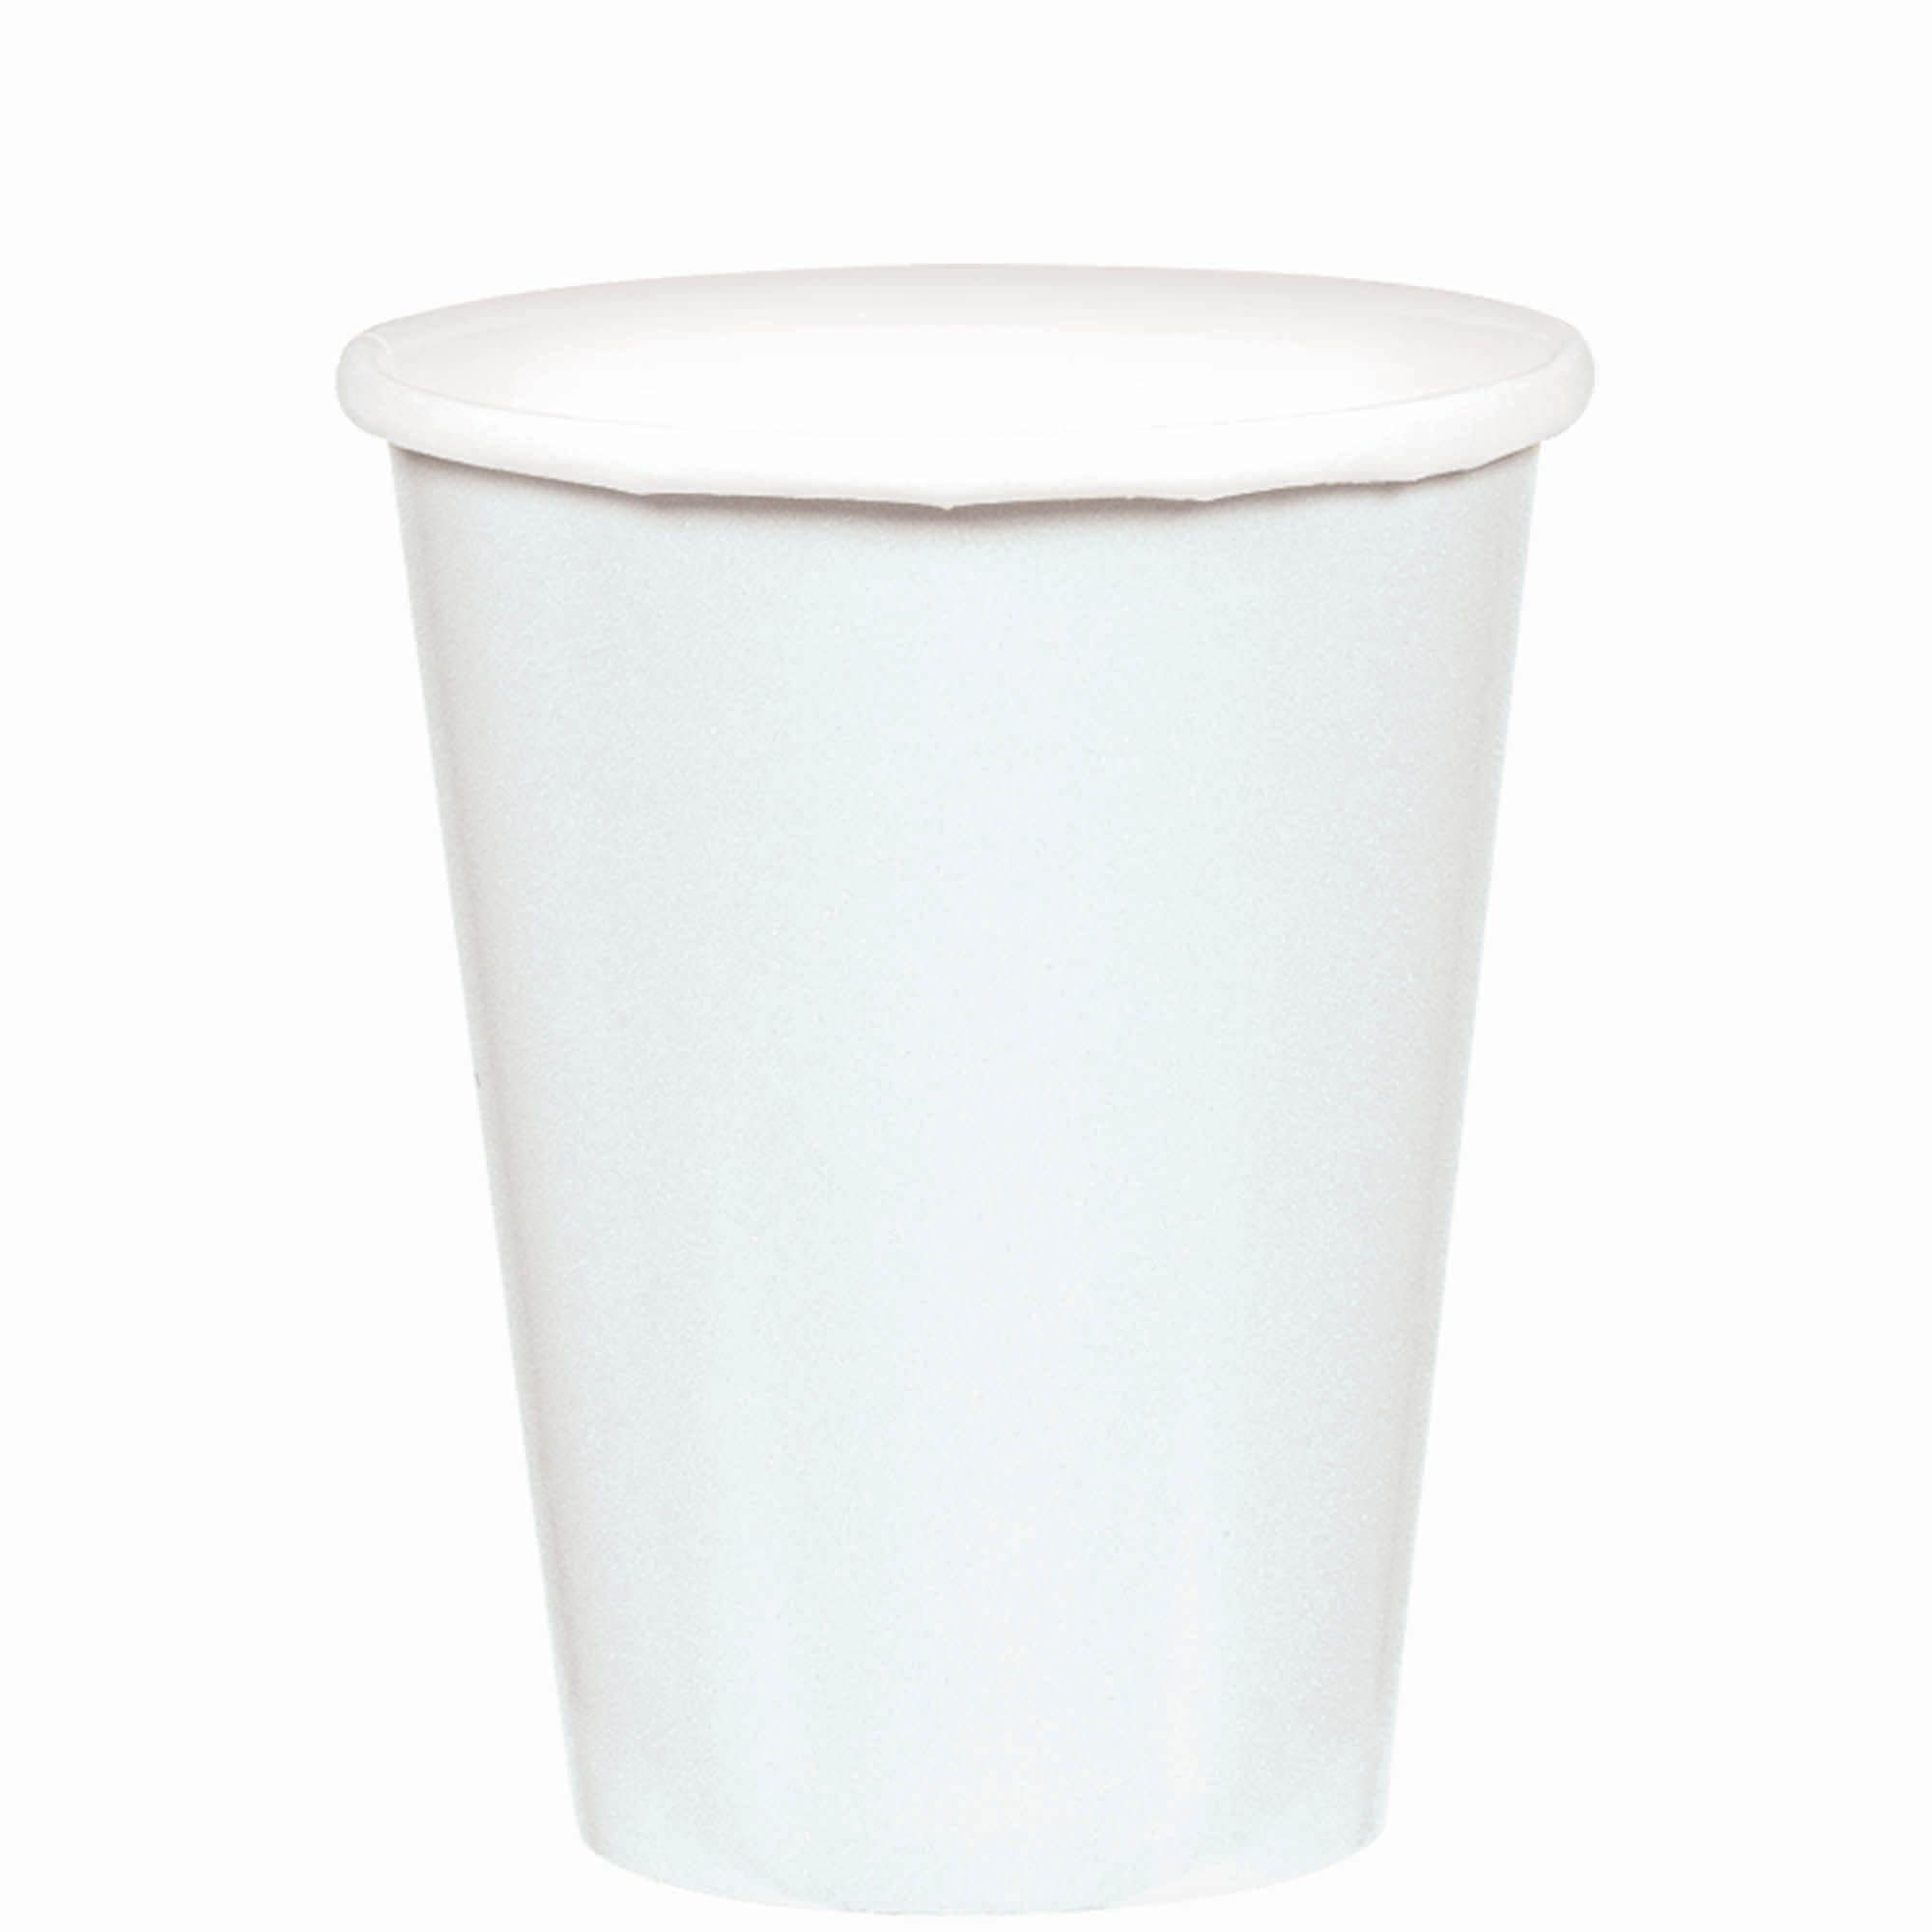 Frosty White Paper Cups, 9oz.